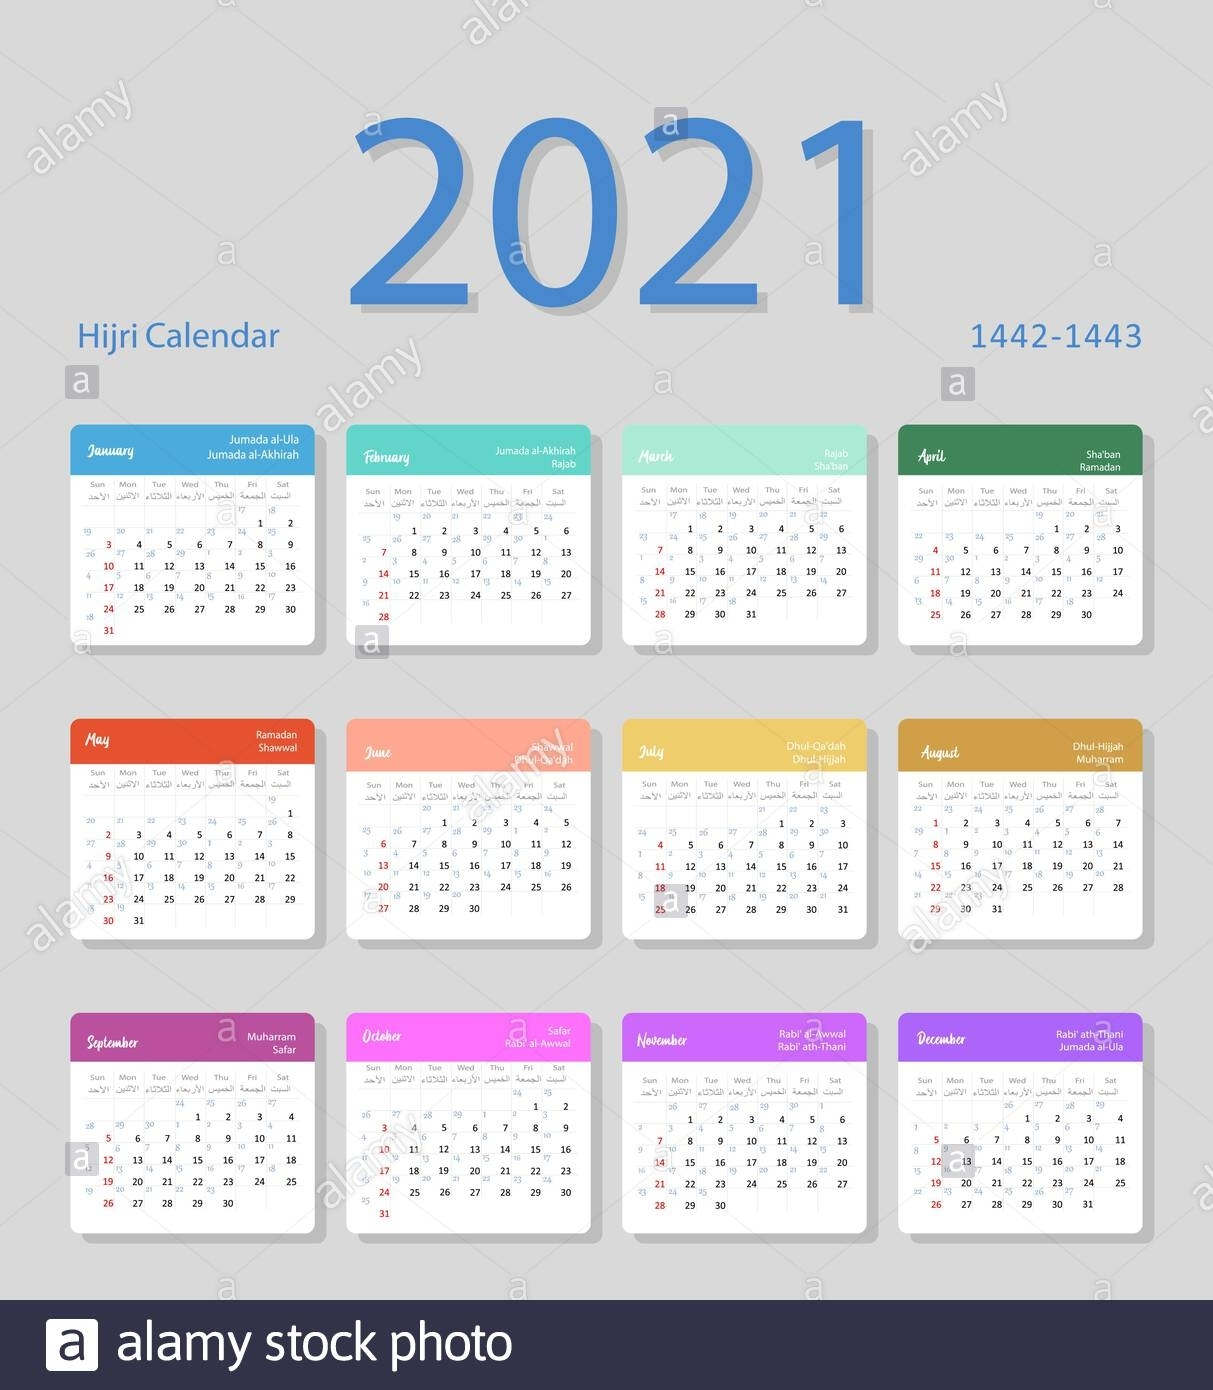 Page 2 - Islamic Calendar High Resolution Stock Photography